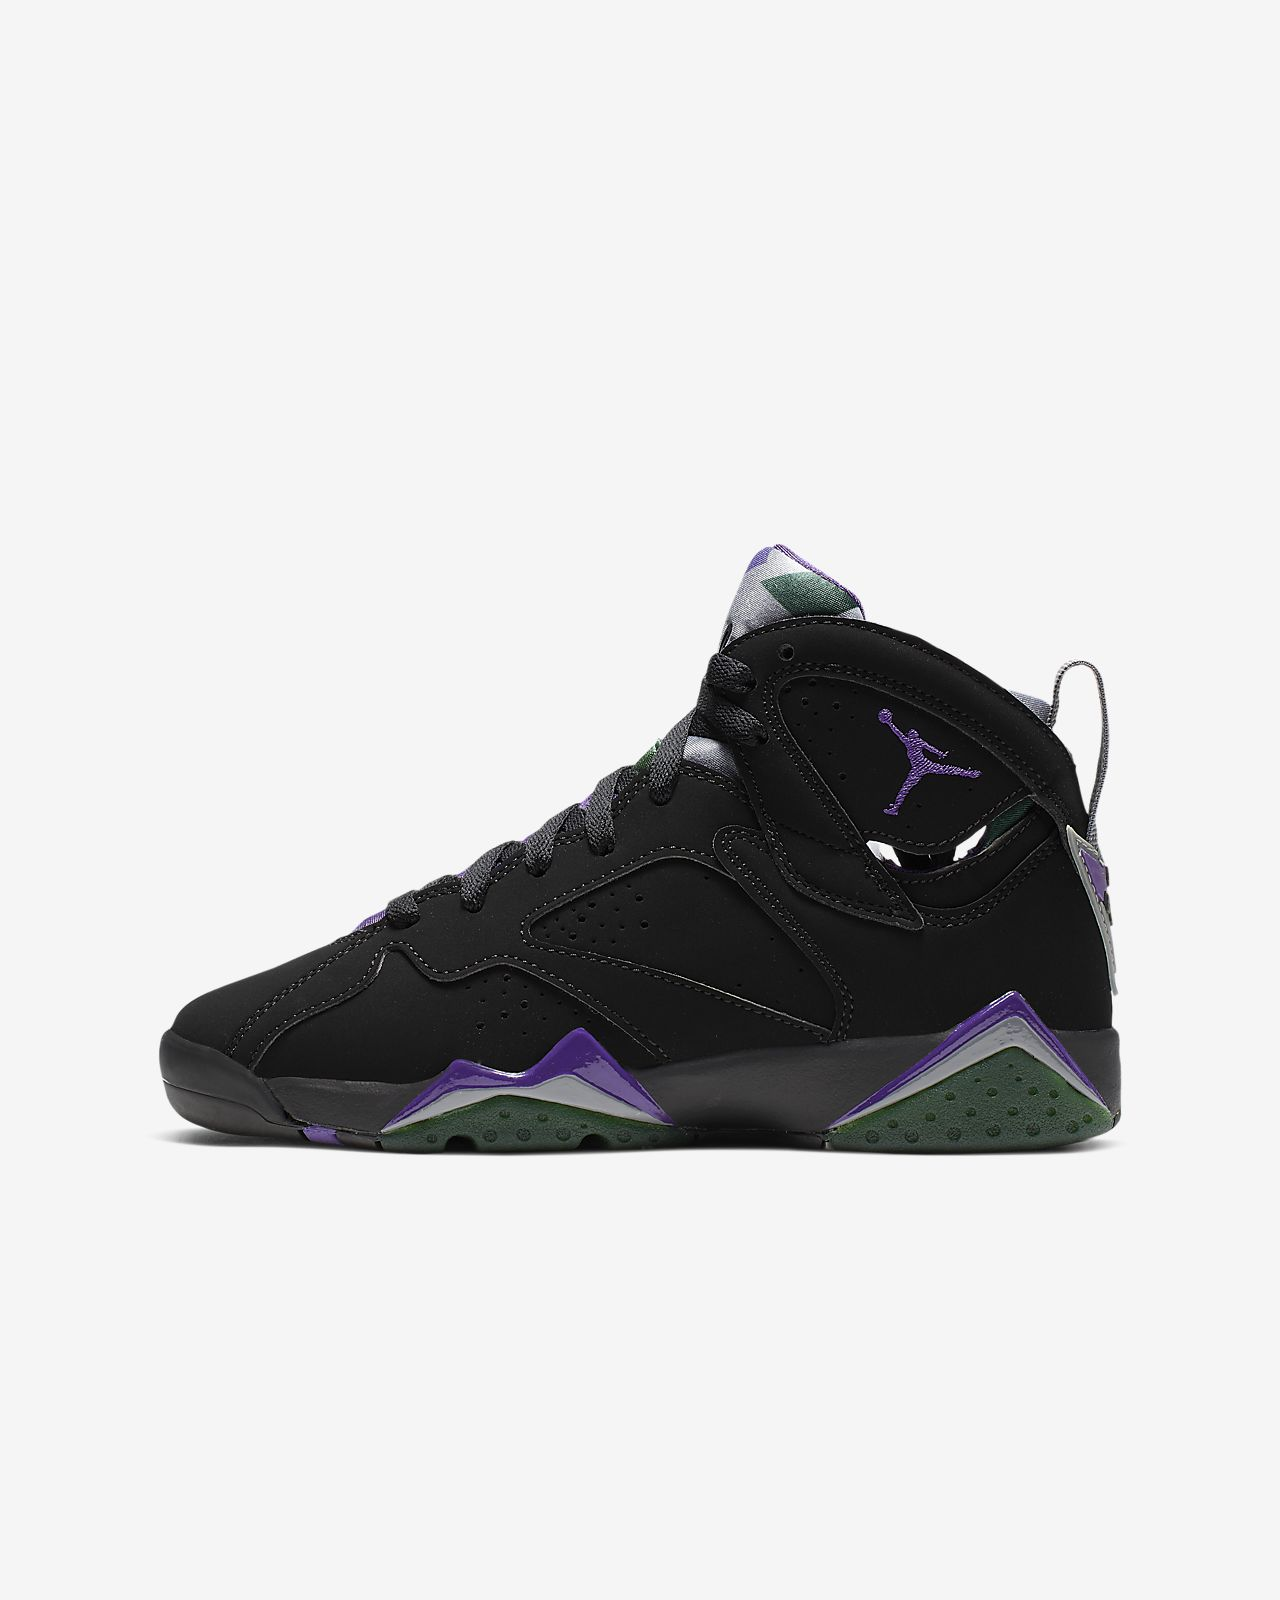 db69e876b9e Air Jordan 7 Retro (3.5y-7y) Big Kids' Shoe. Nike.com